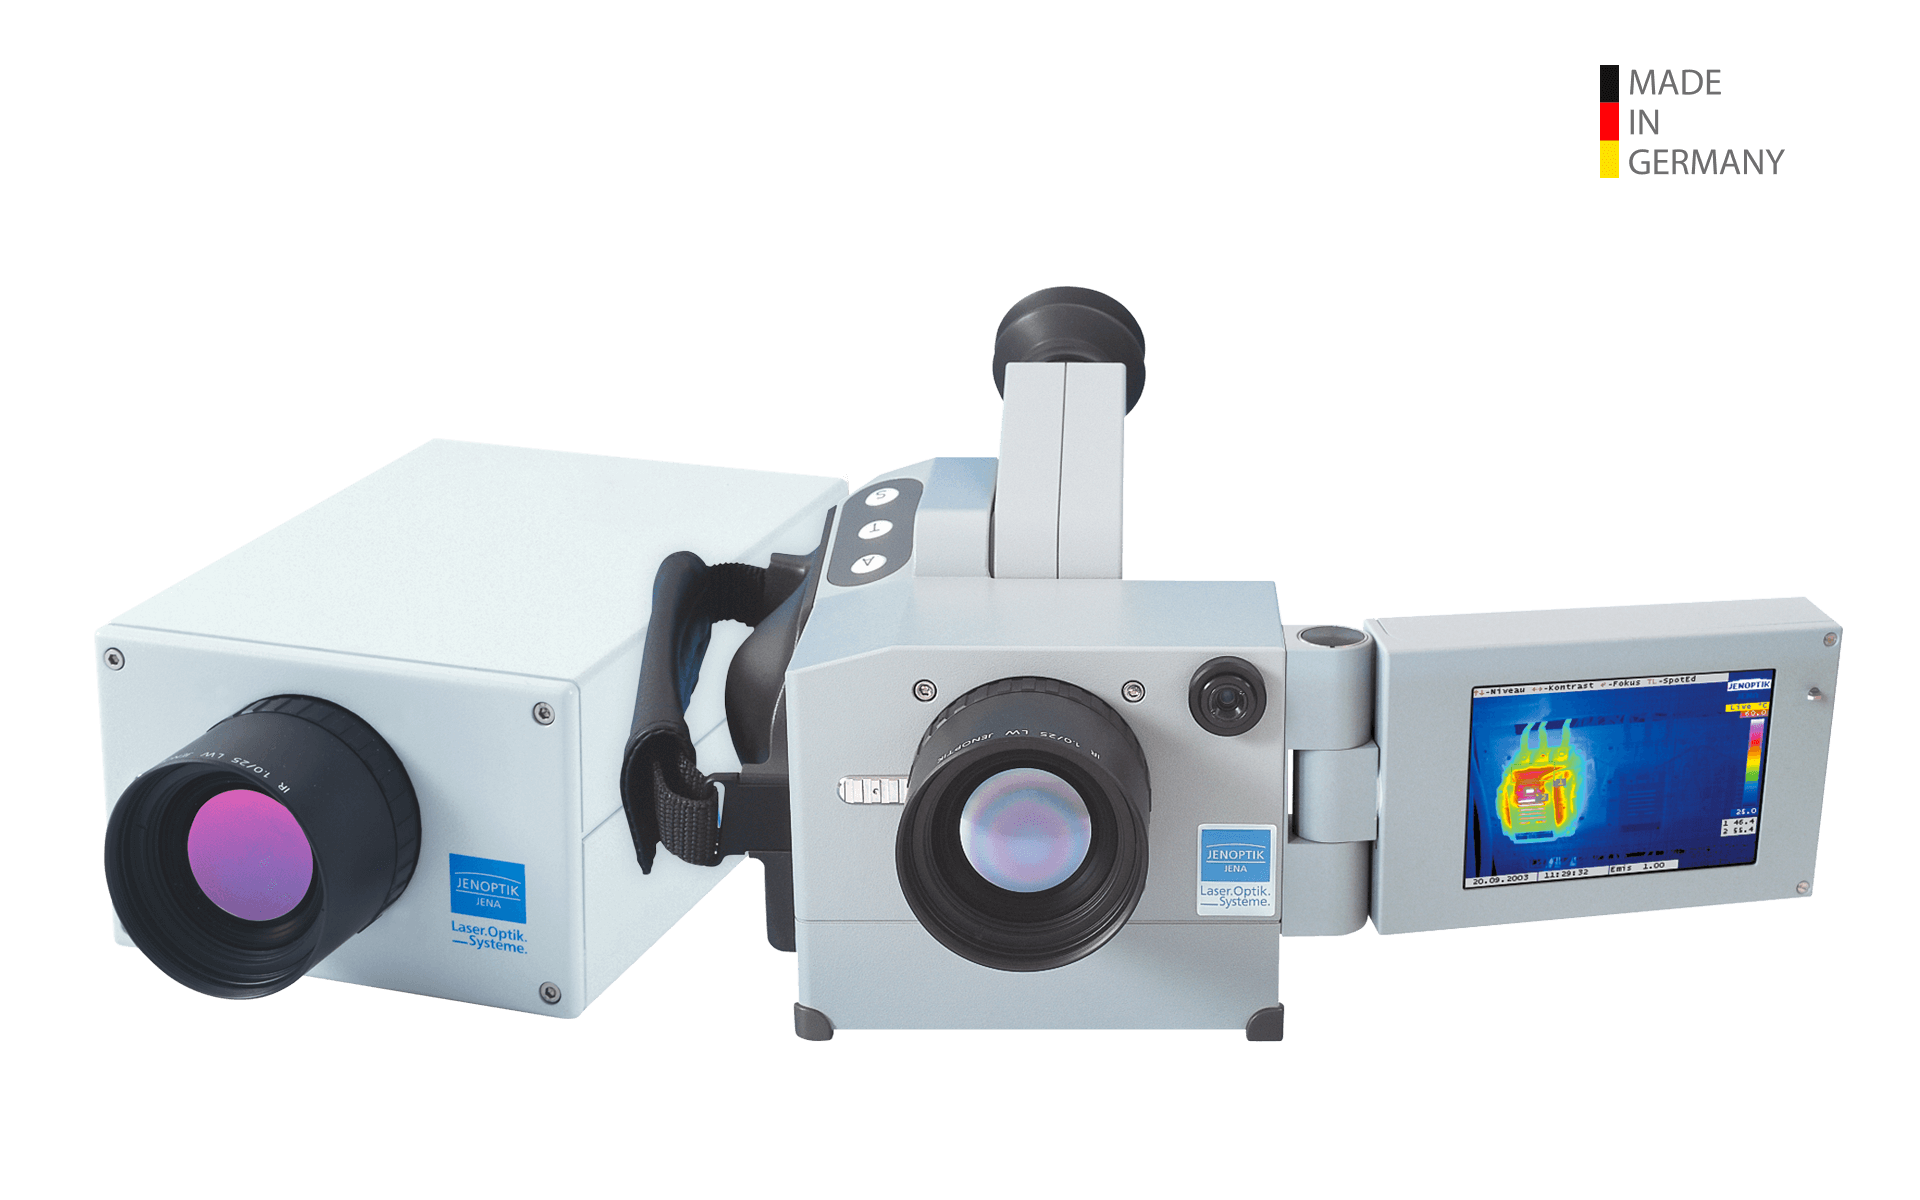 Infrared camera VarioCAM® and VarioCAM® head